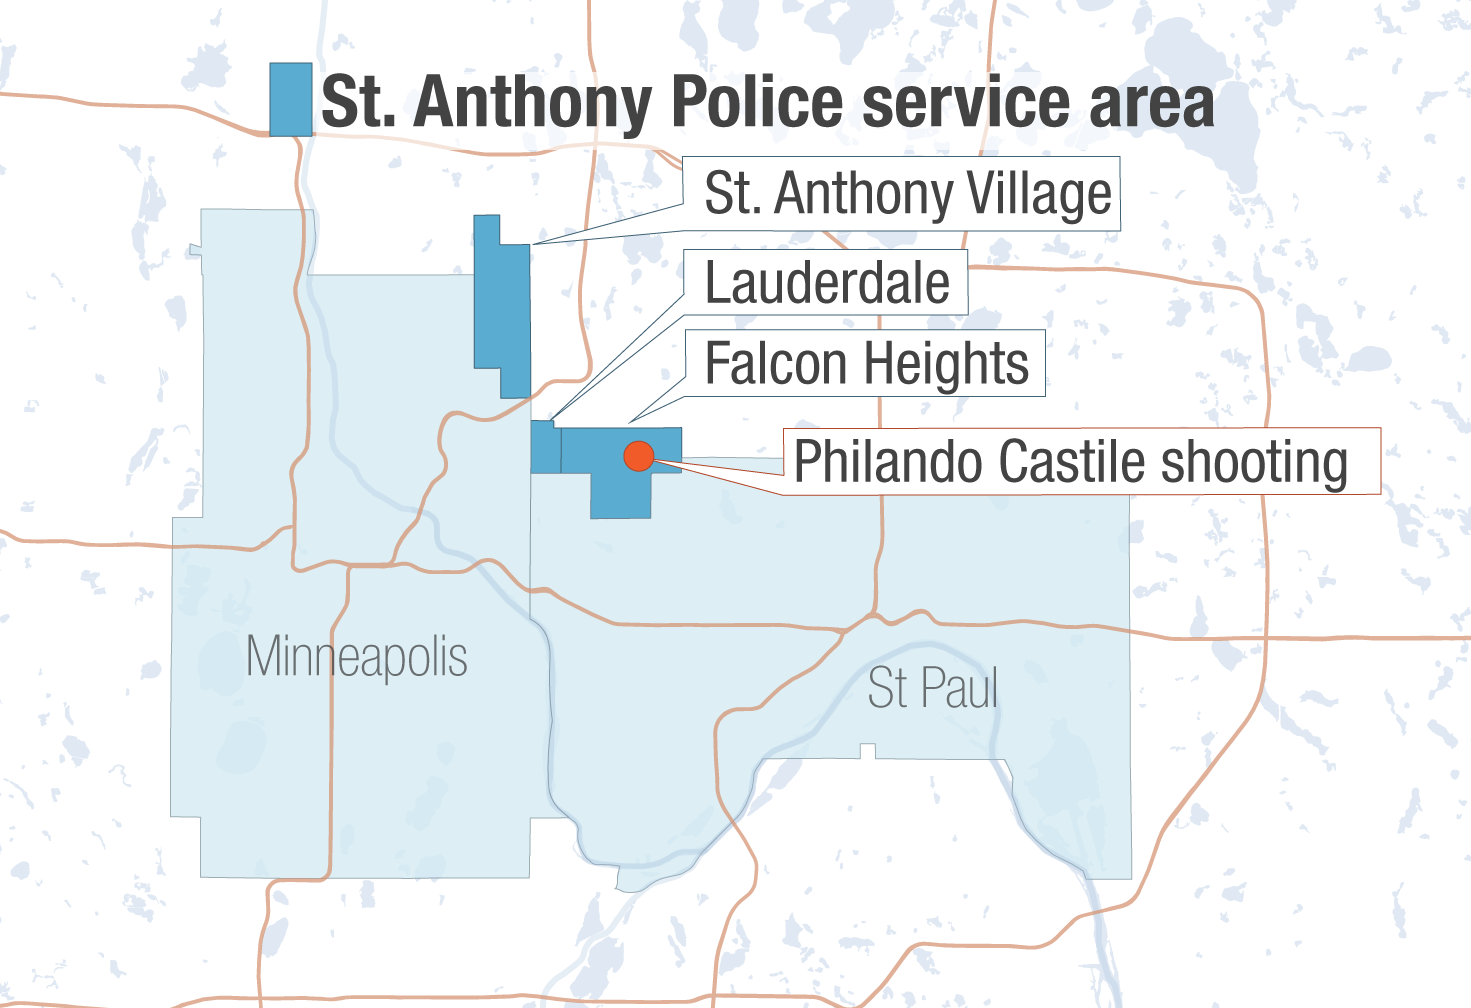 St. Anthony police service area